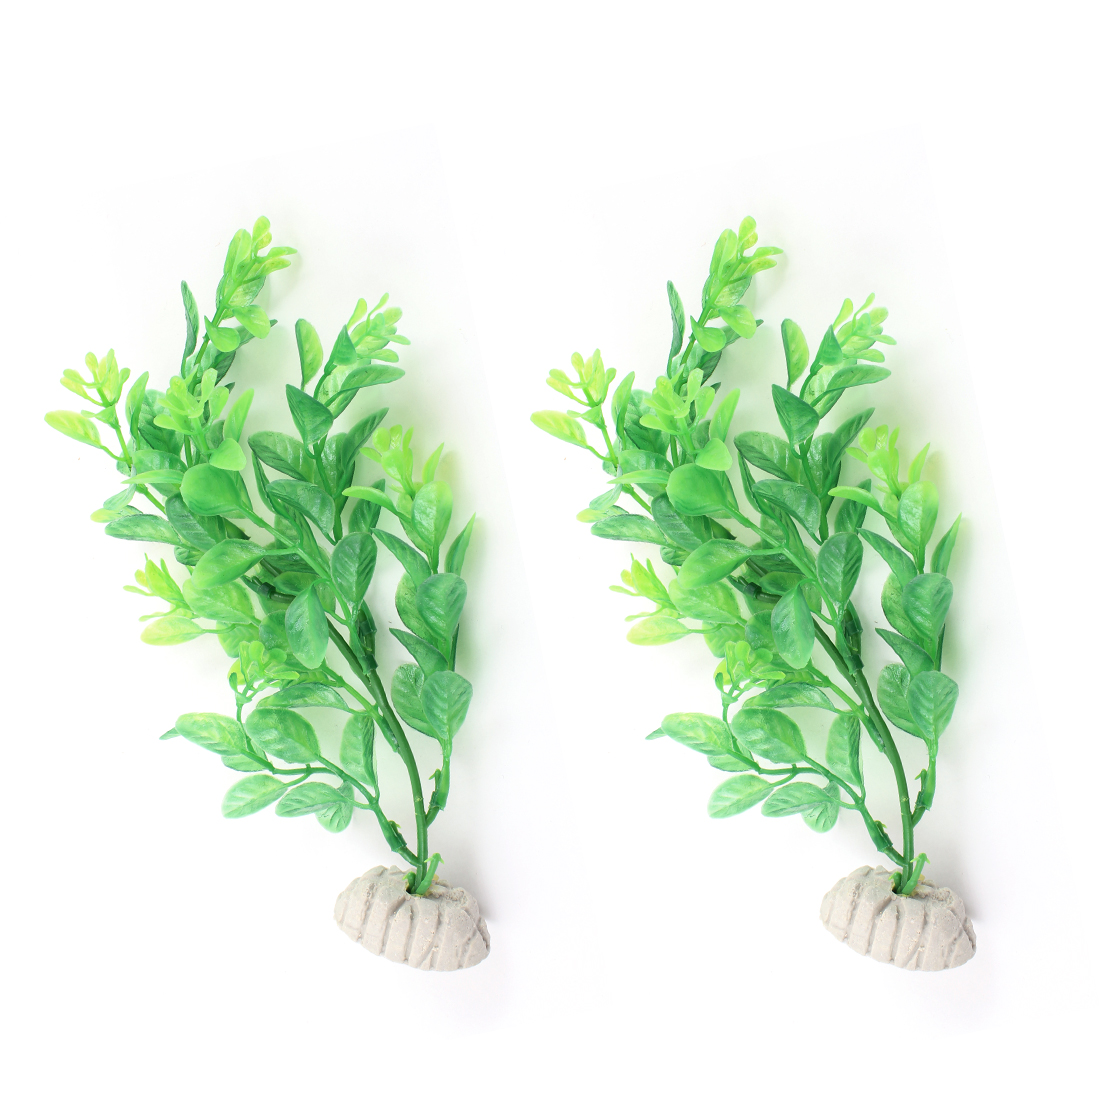 "2 Pcs 8.5"" Height Green Artificial Aquatic Plant for Aquarium"